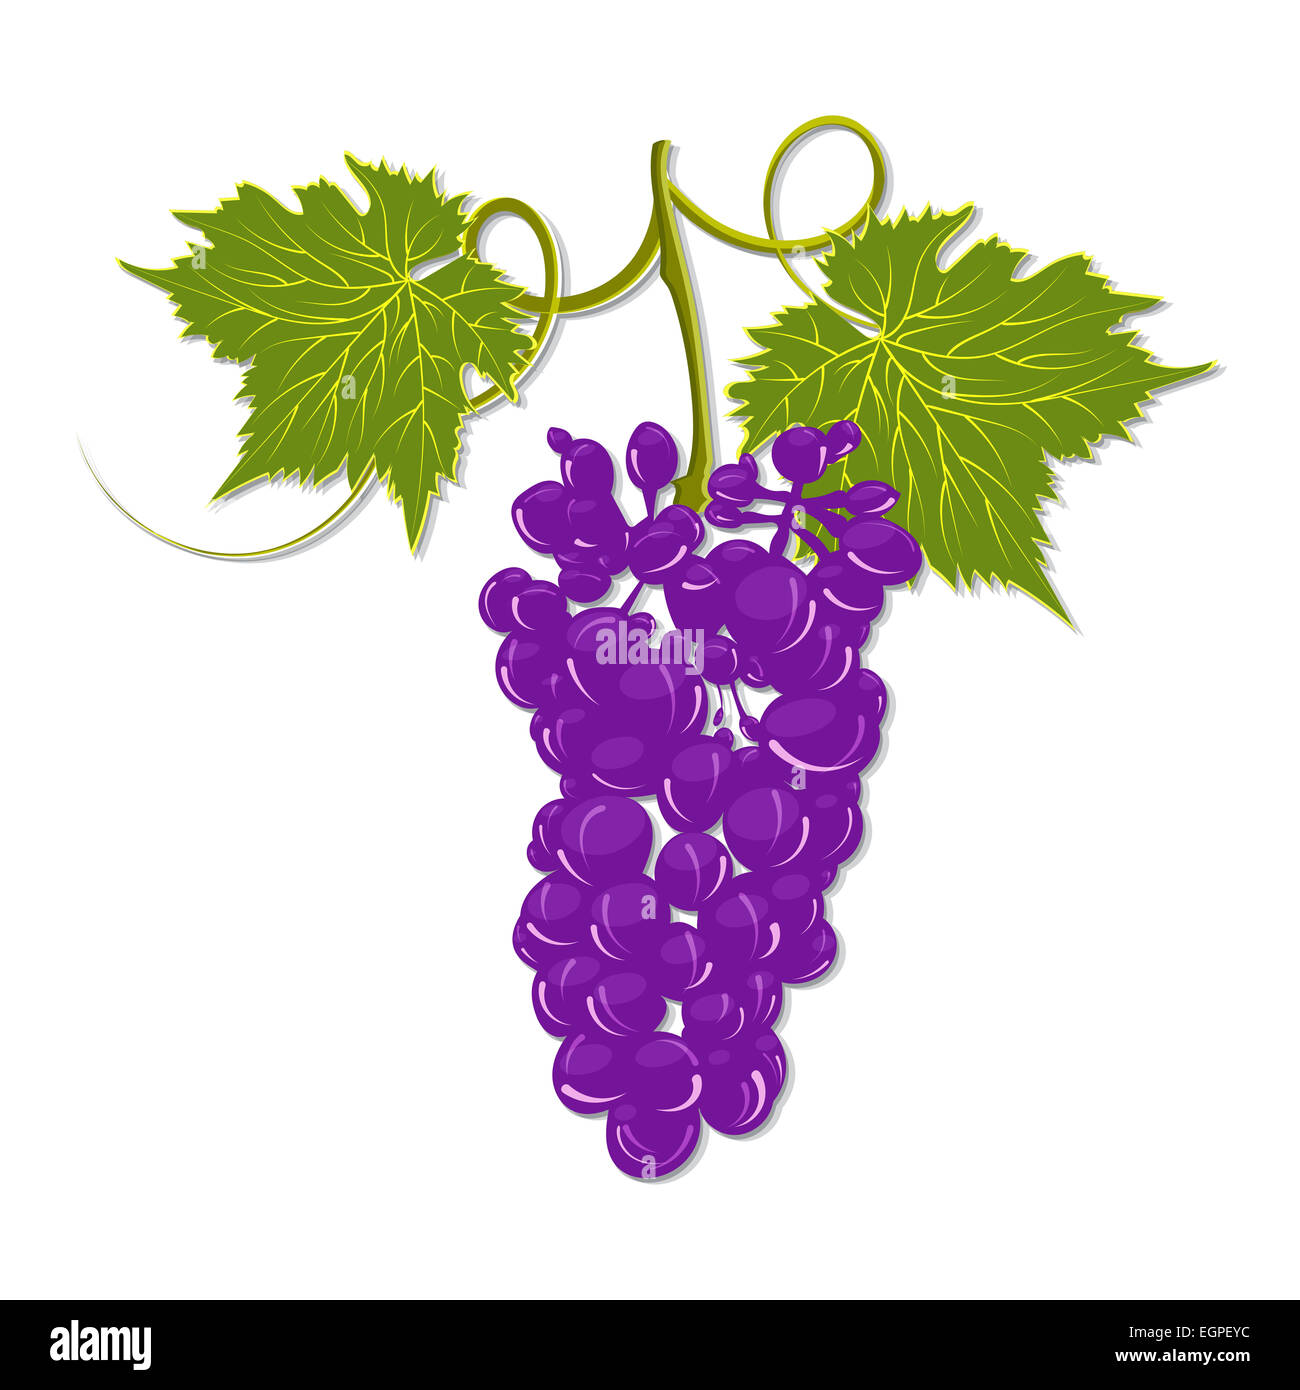 Handdrawing A Bunch Of Grapes With Leaves On A White Background  Stock  Image